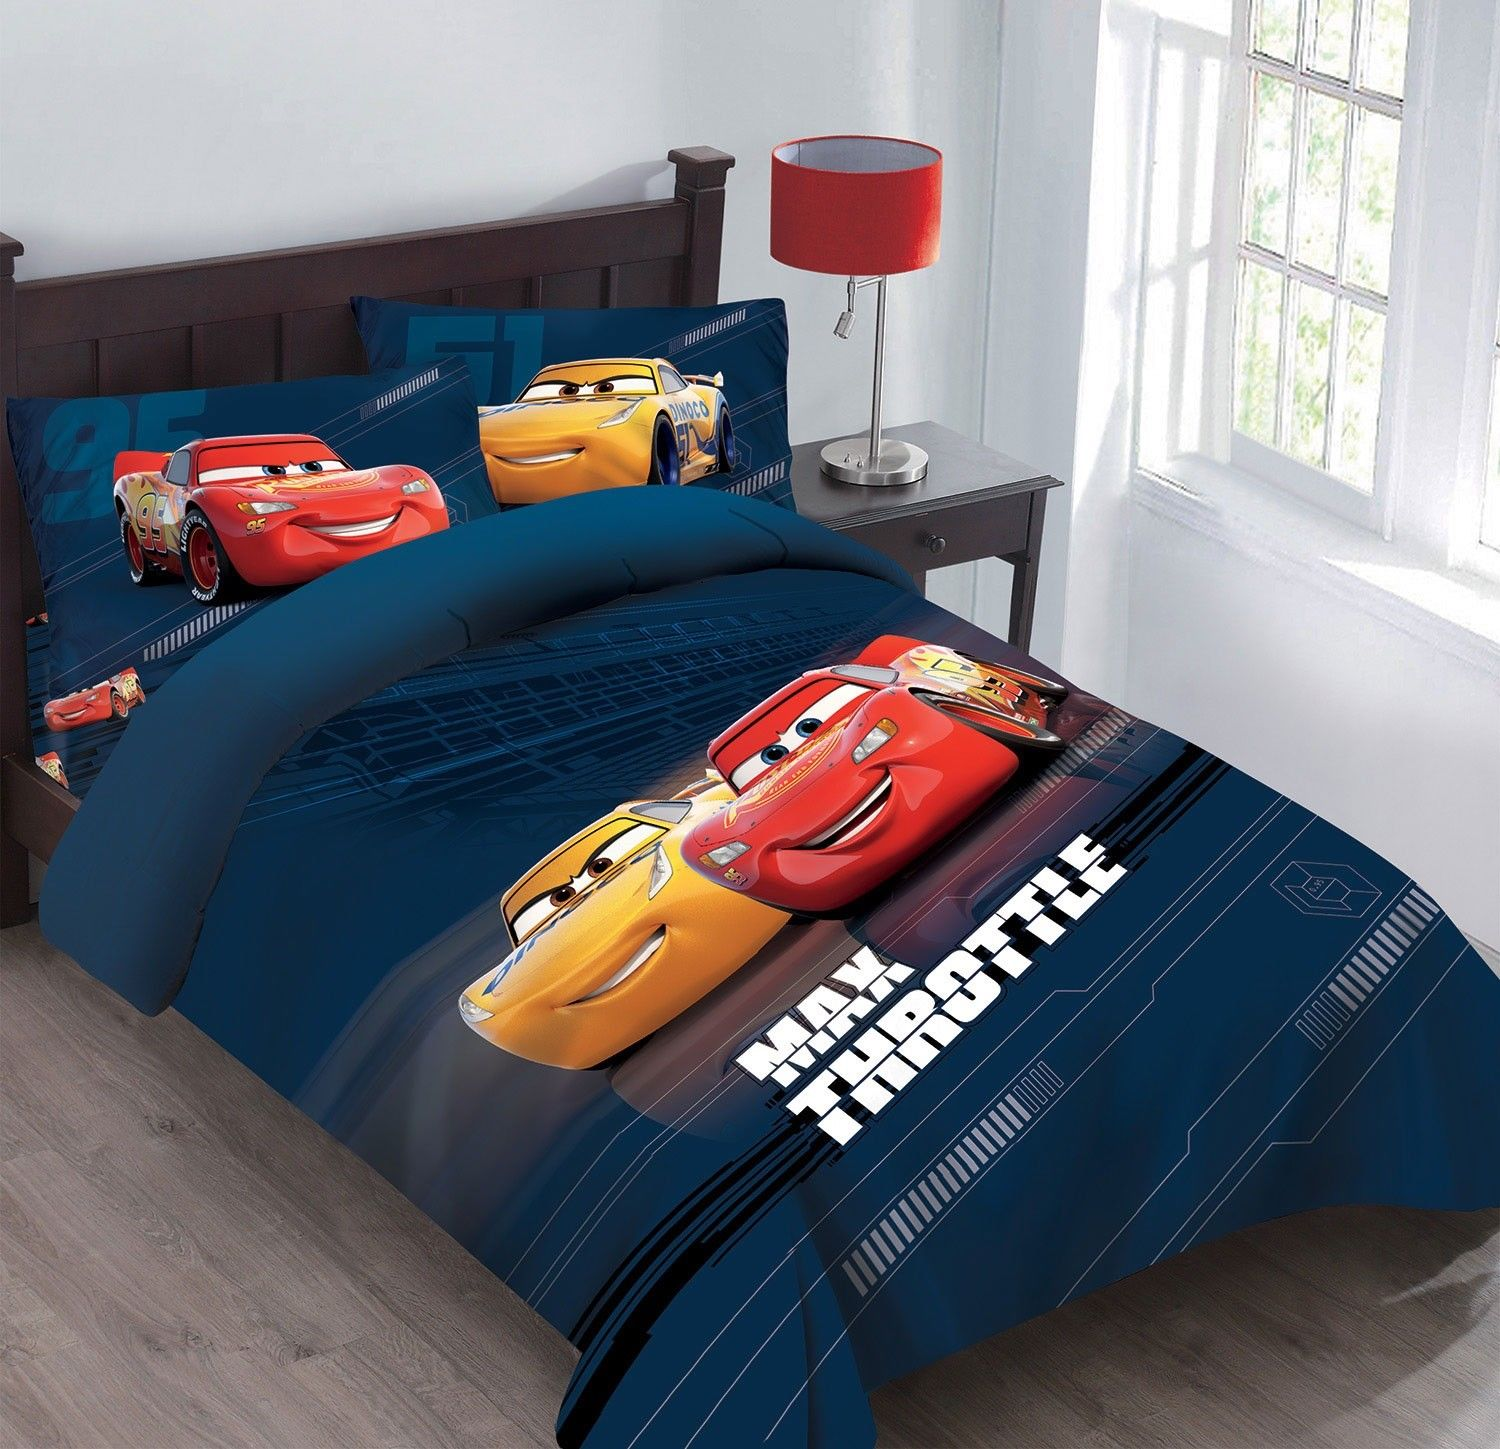 Disney 3pc CARS Max Throttle Bedding Set, Licensed Twin Comforter W/Fitted Sheet And Pillowcase